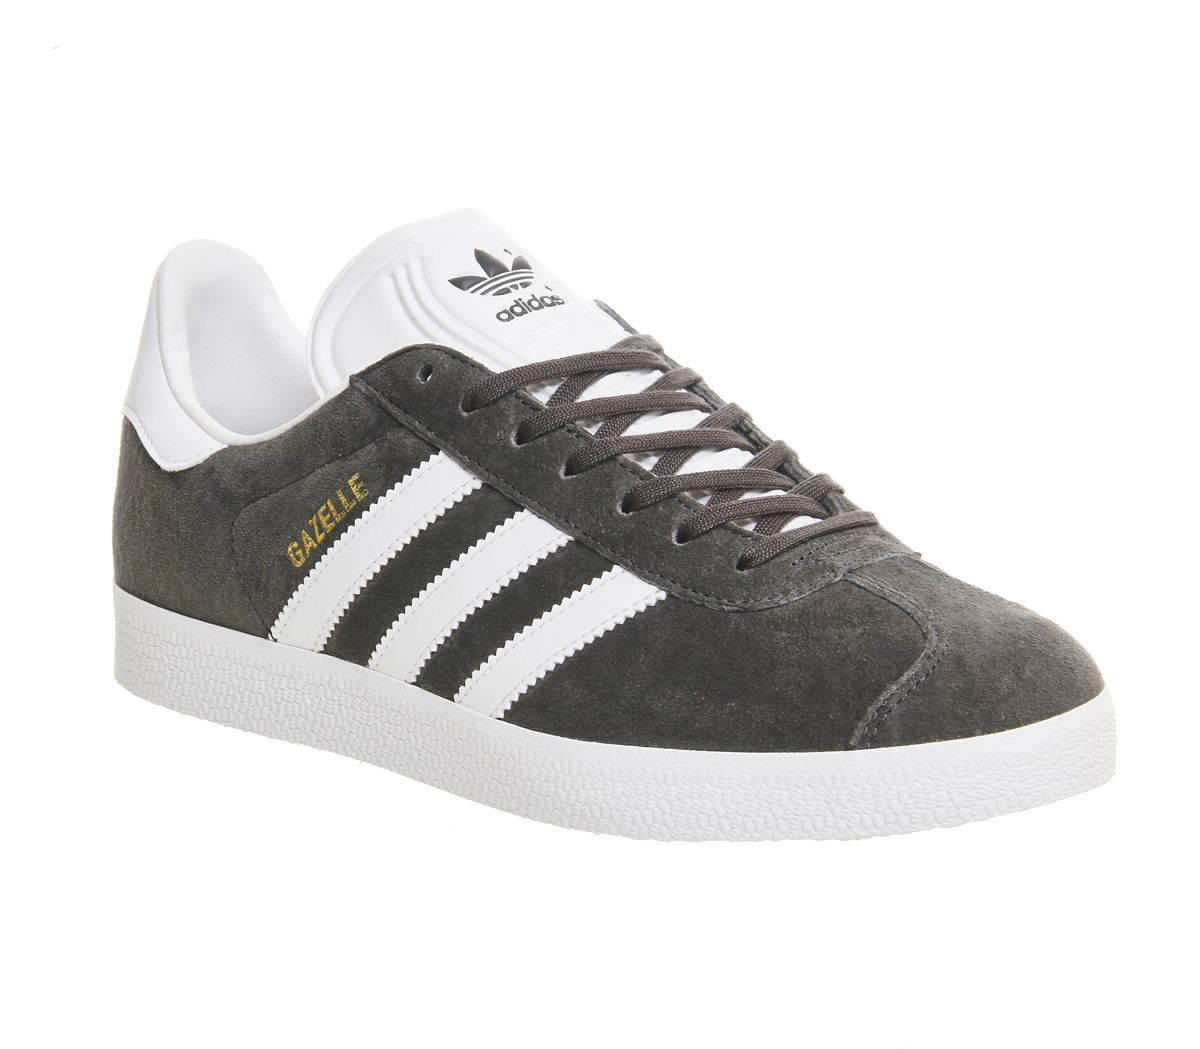 14220a742166 Adidas Gazelle Dgh Solid Grey White Gold Met - His trainers